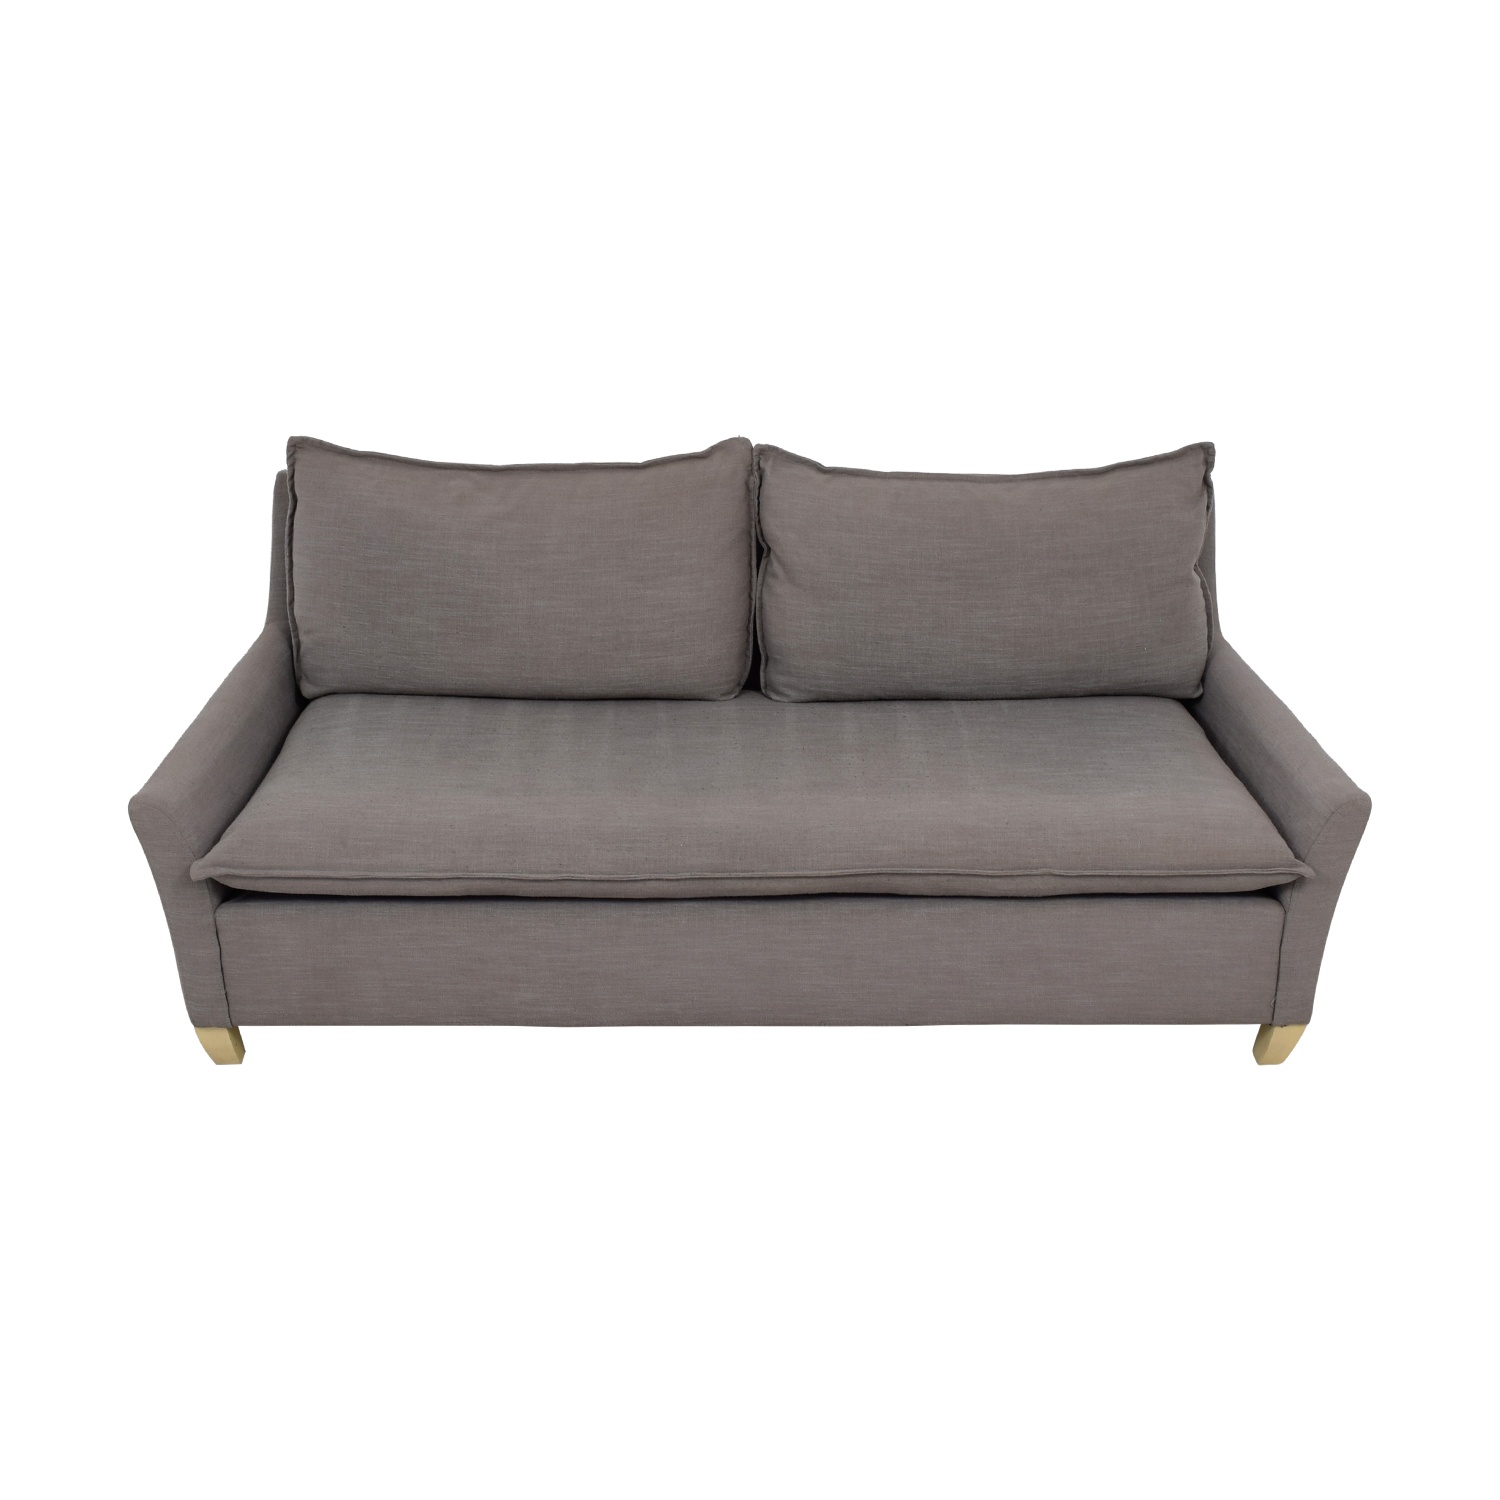 West Elm West Elm Grey Single Cushion Couch